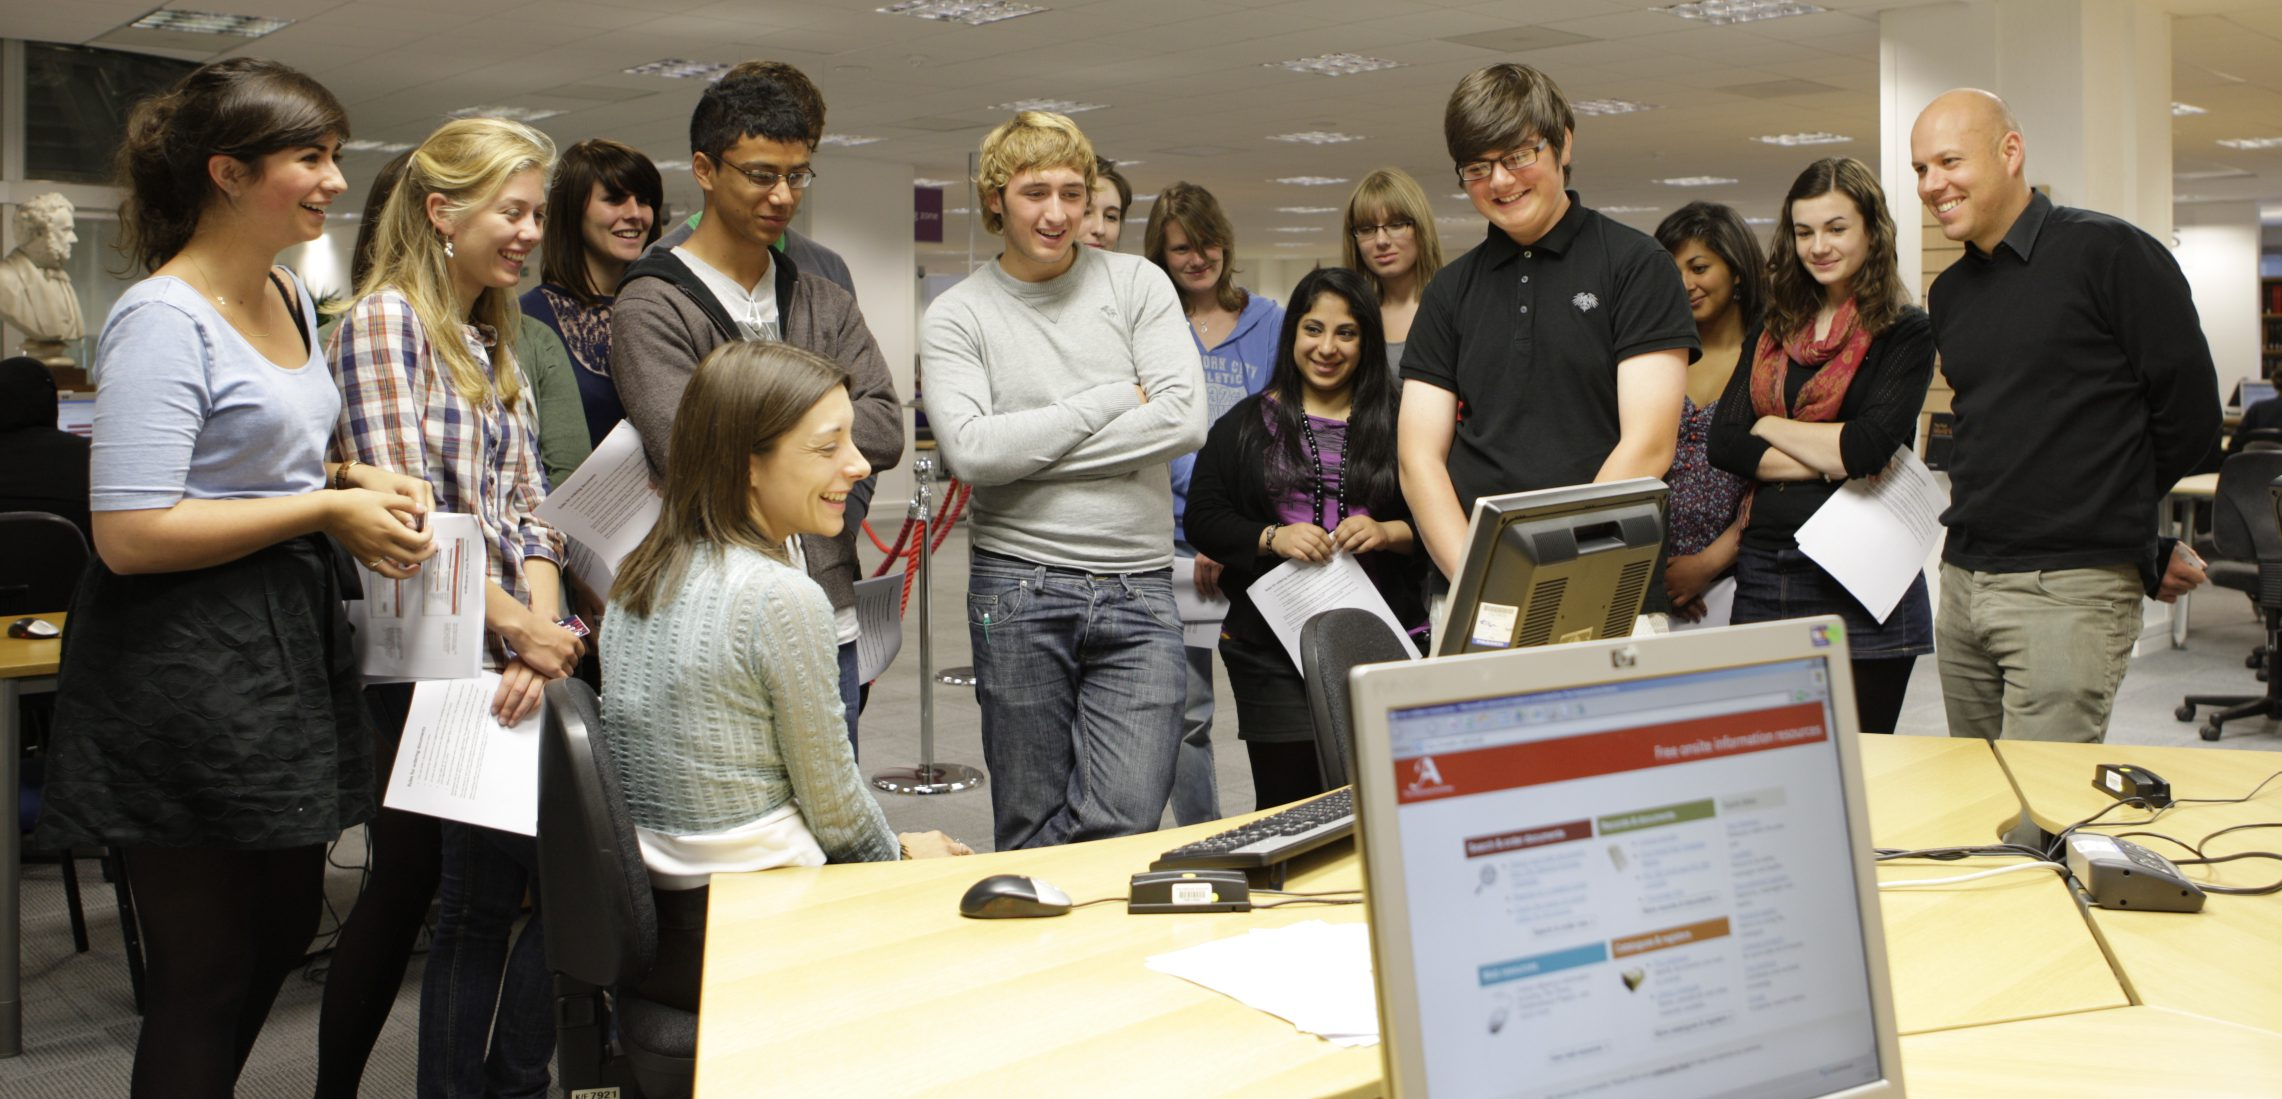 A group of students gather around a computer terminal within The National Archives